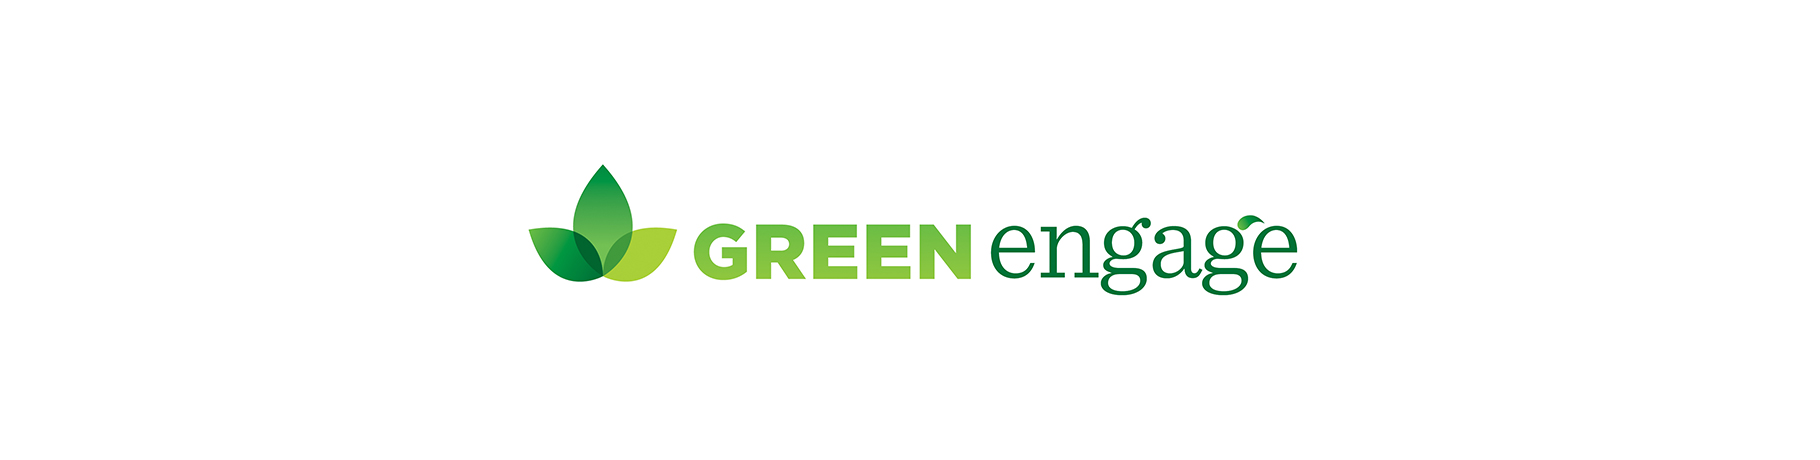 green-engage-banner